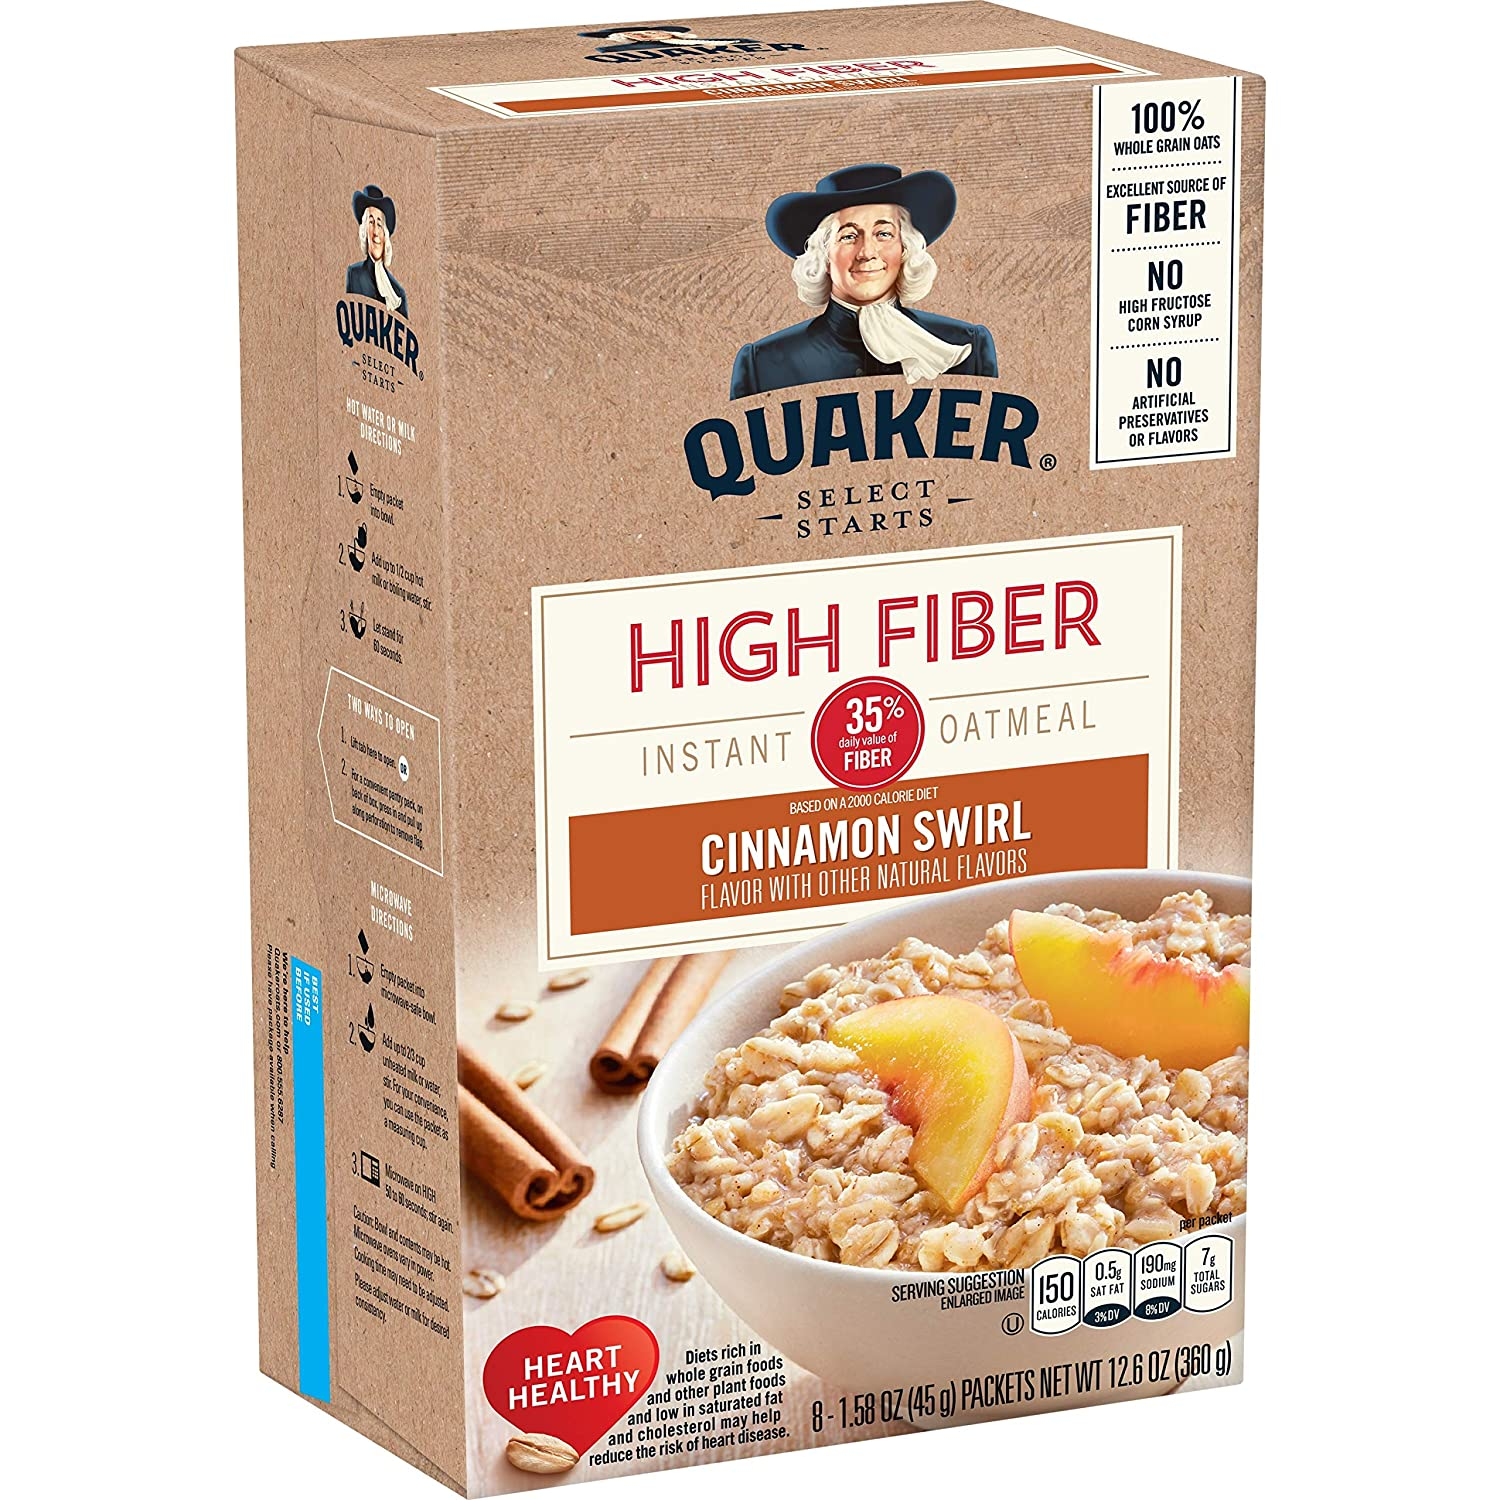 Quaker Instant Oatmeal, High Fiber, Cinnamon Swirl, Breakfast Cereal, 8 -1.58 oz Packets Per Box (Pack of 4)